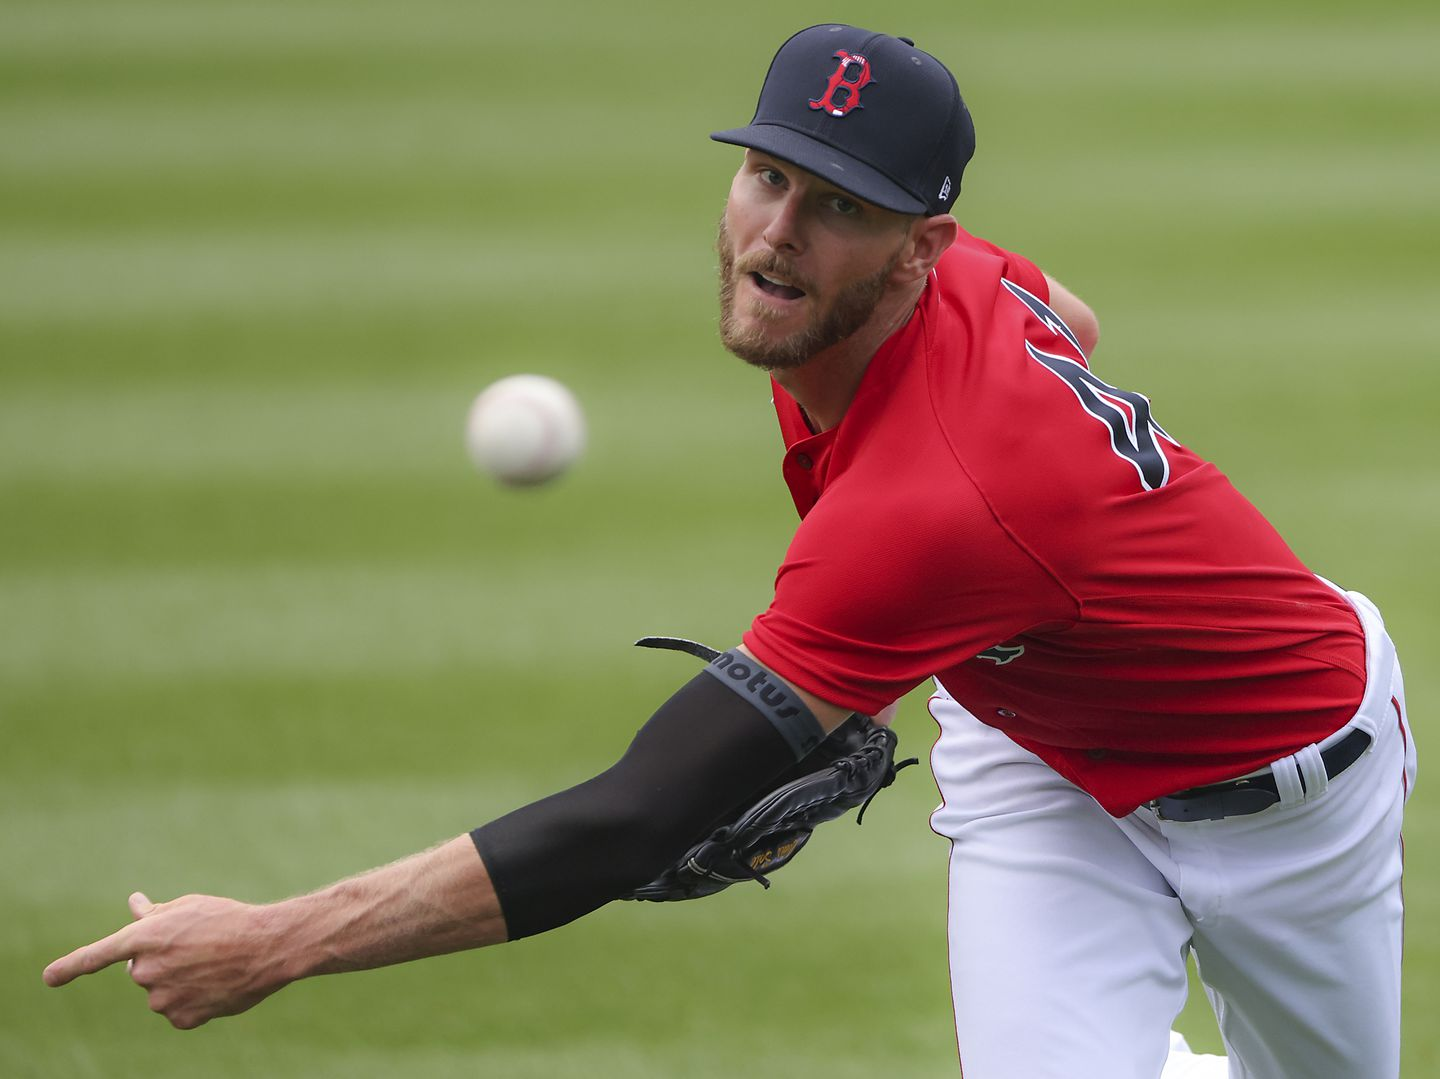 Red Sox ace Chris Sale inches closer to return after rehab start - The  Boston Globe